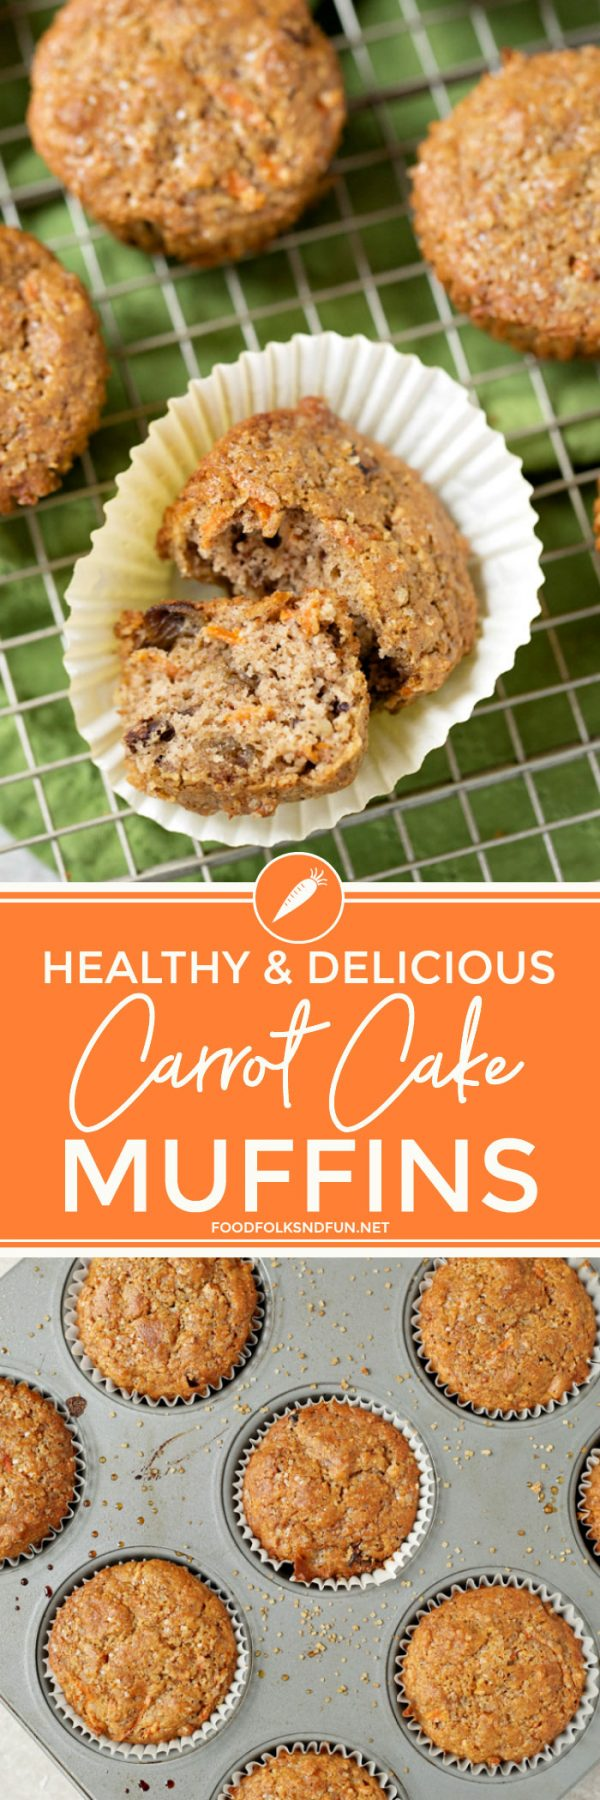 Amazing and Delicious Carrot Muffins